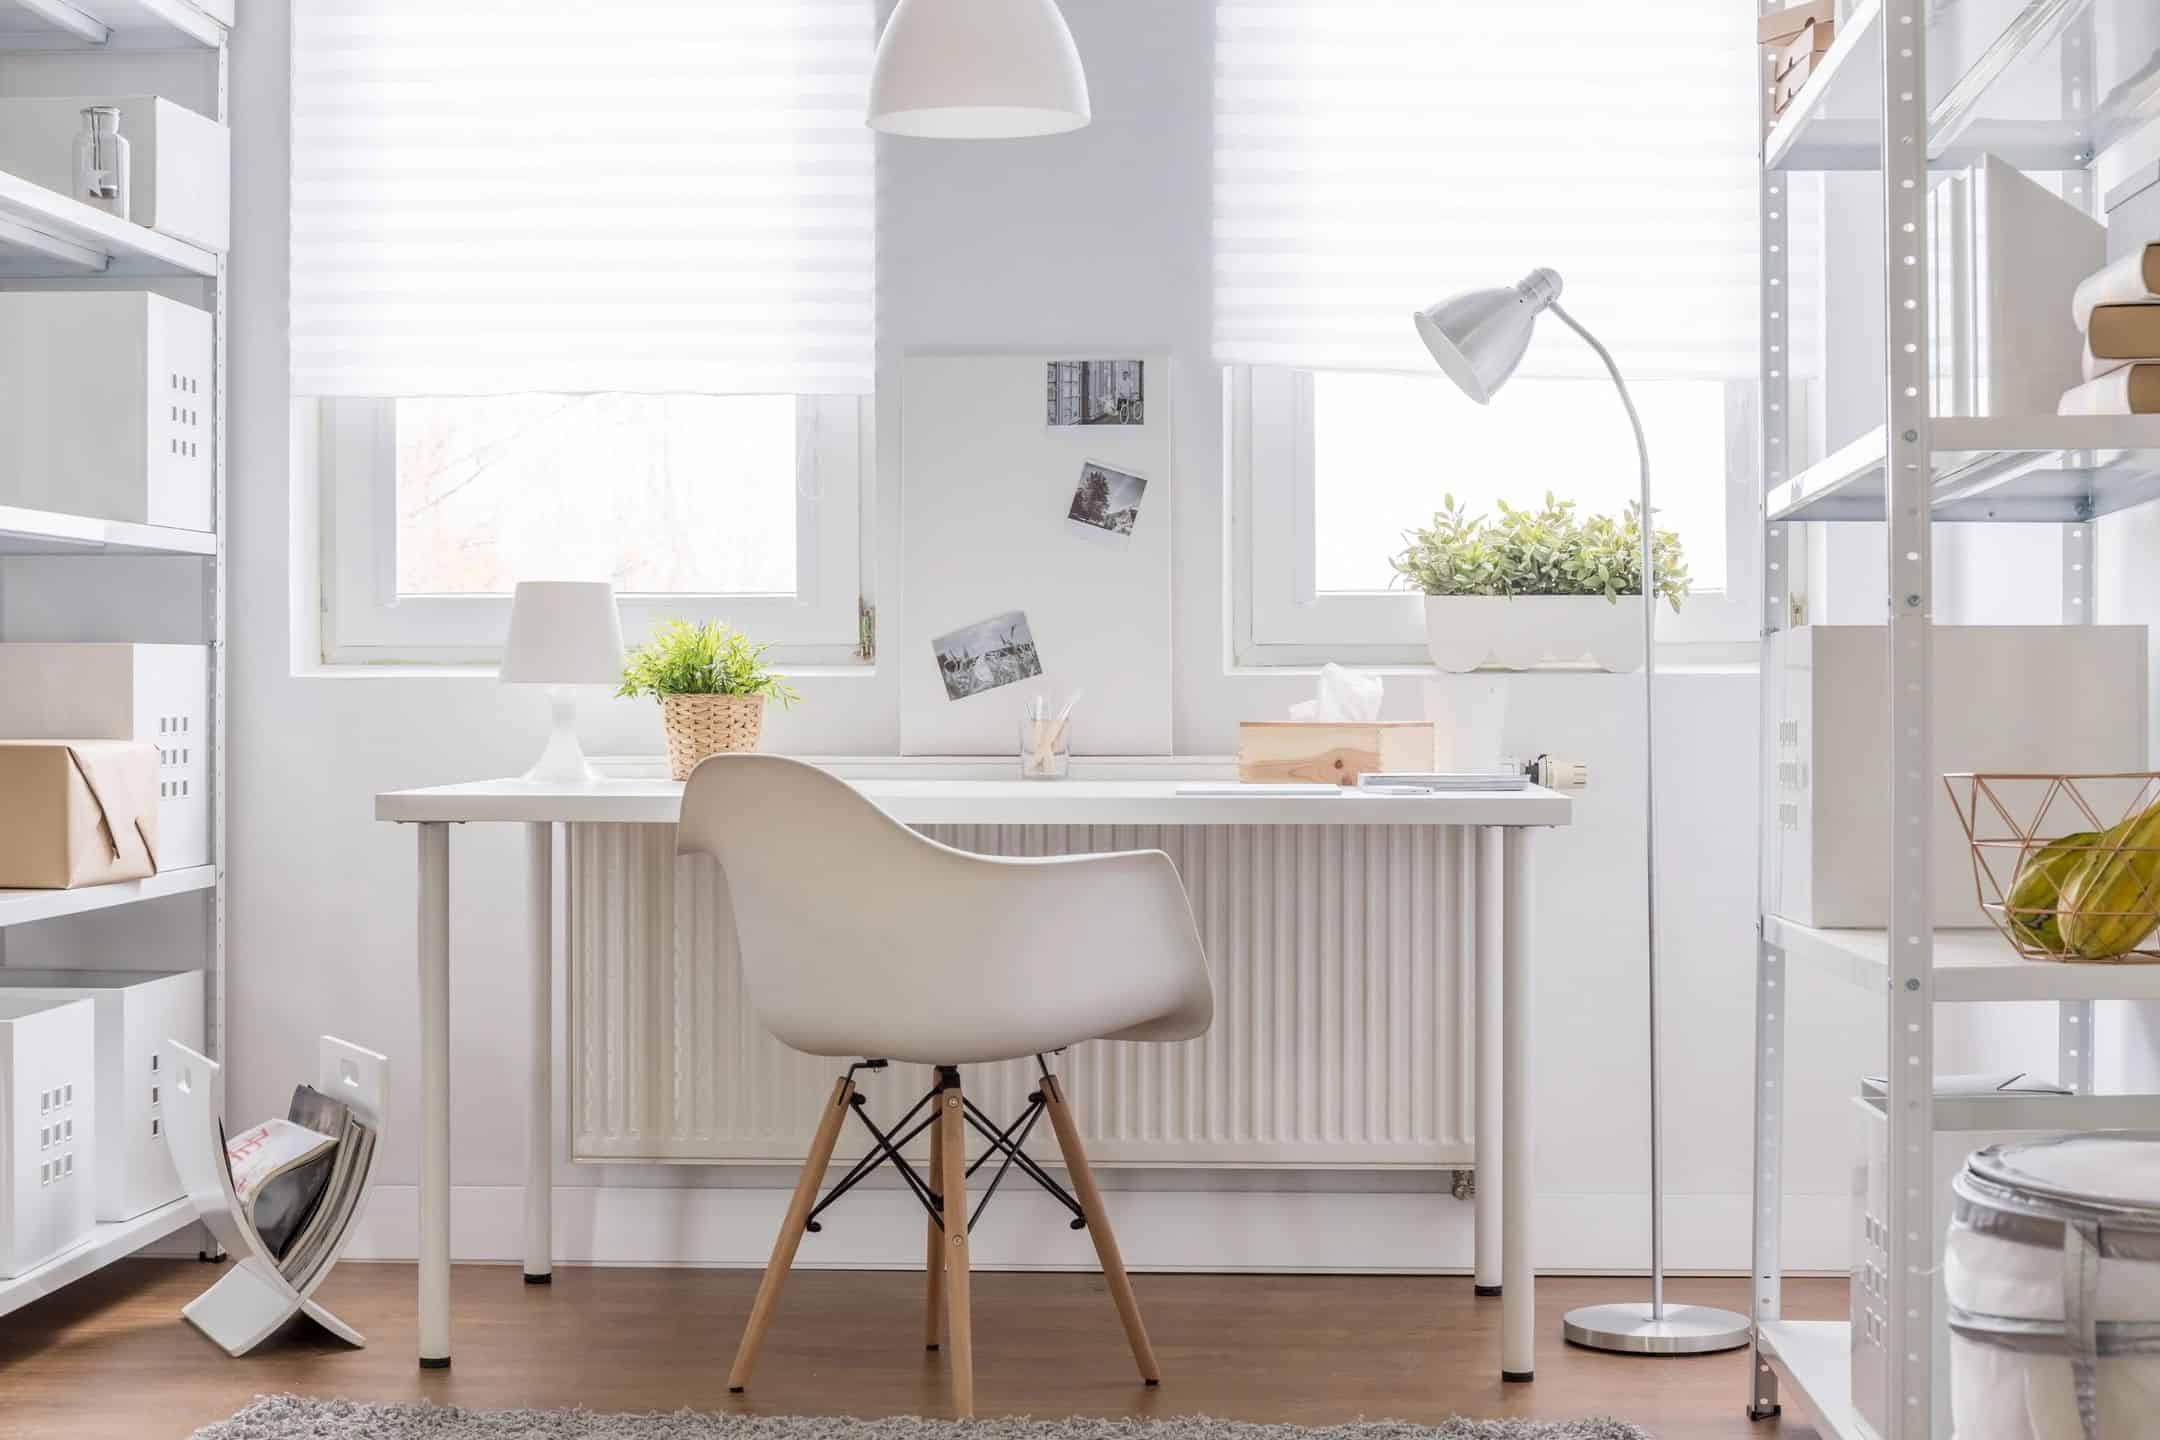 3 Ways to Increase Natural Light in Your Home